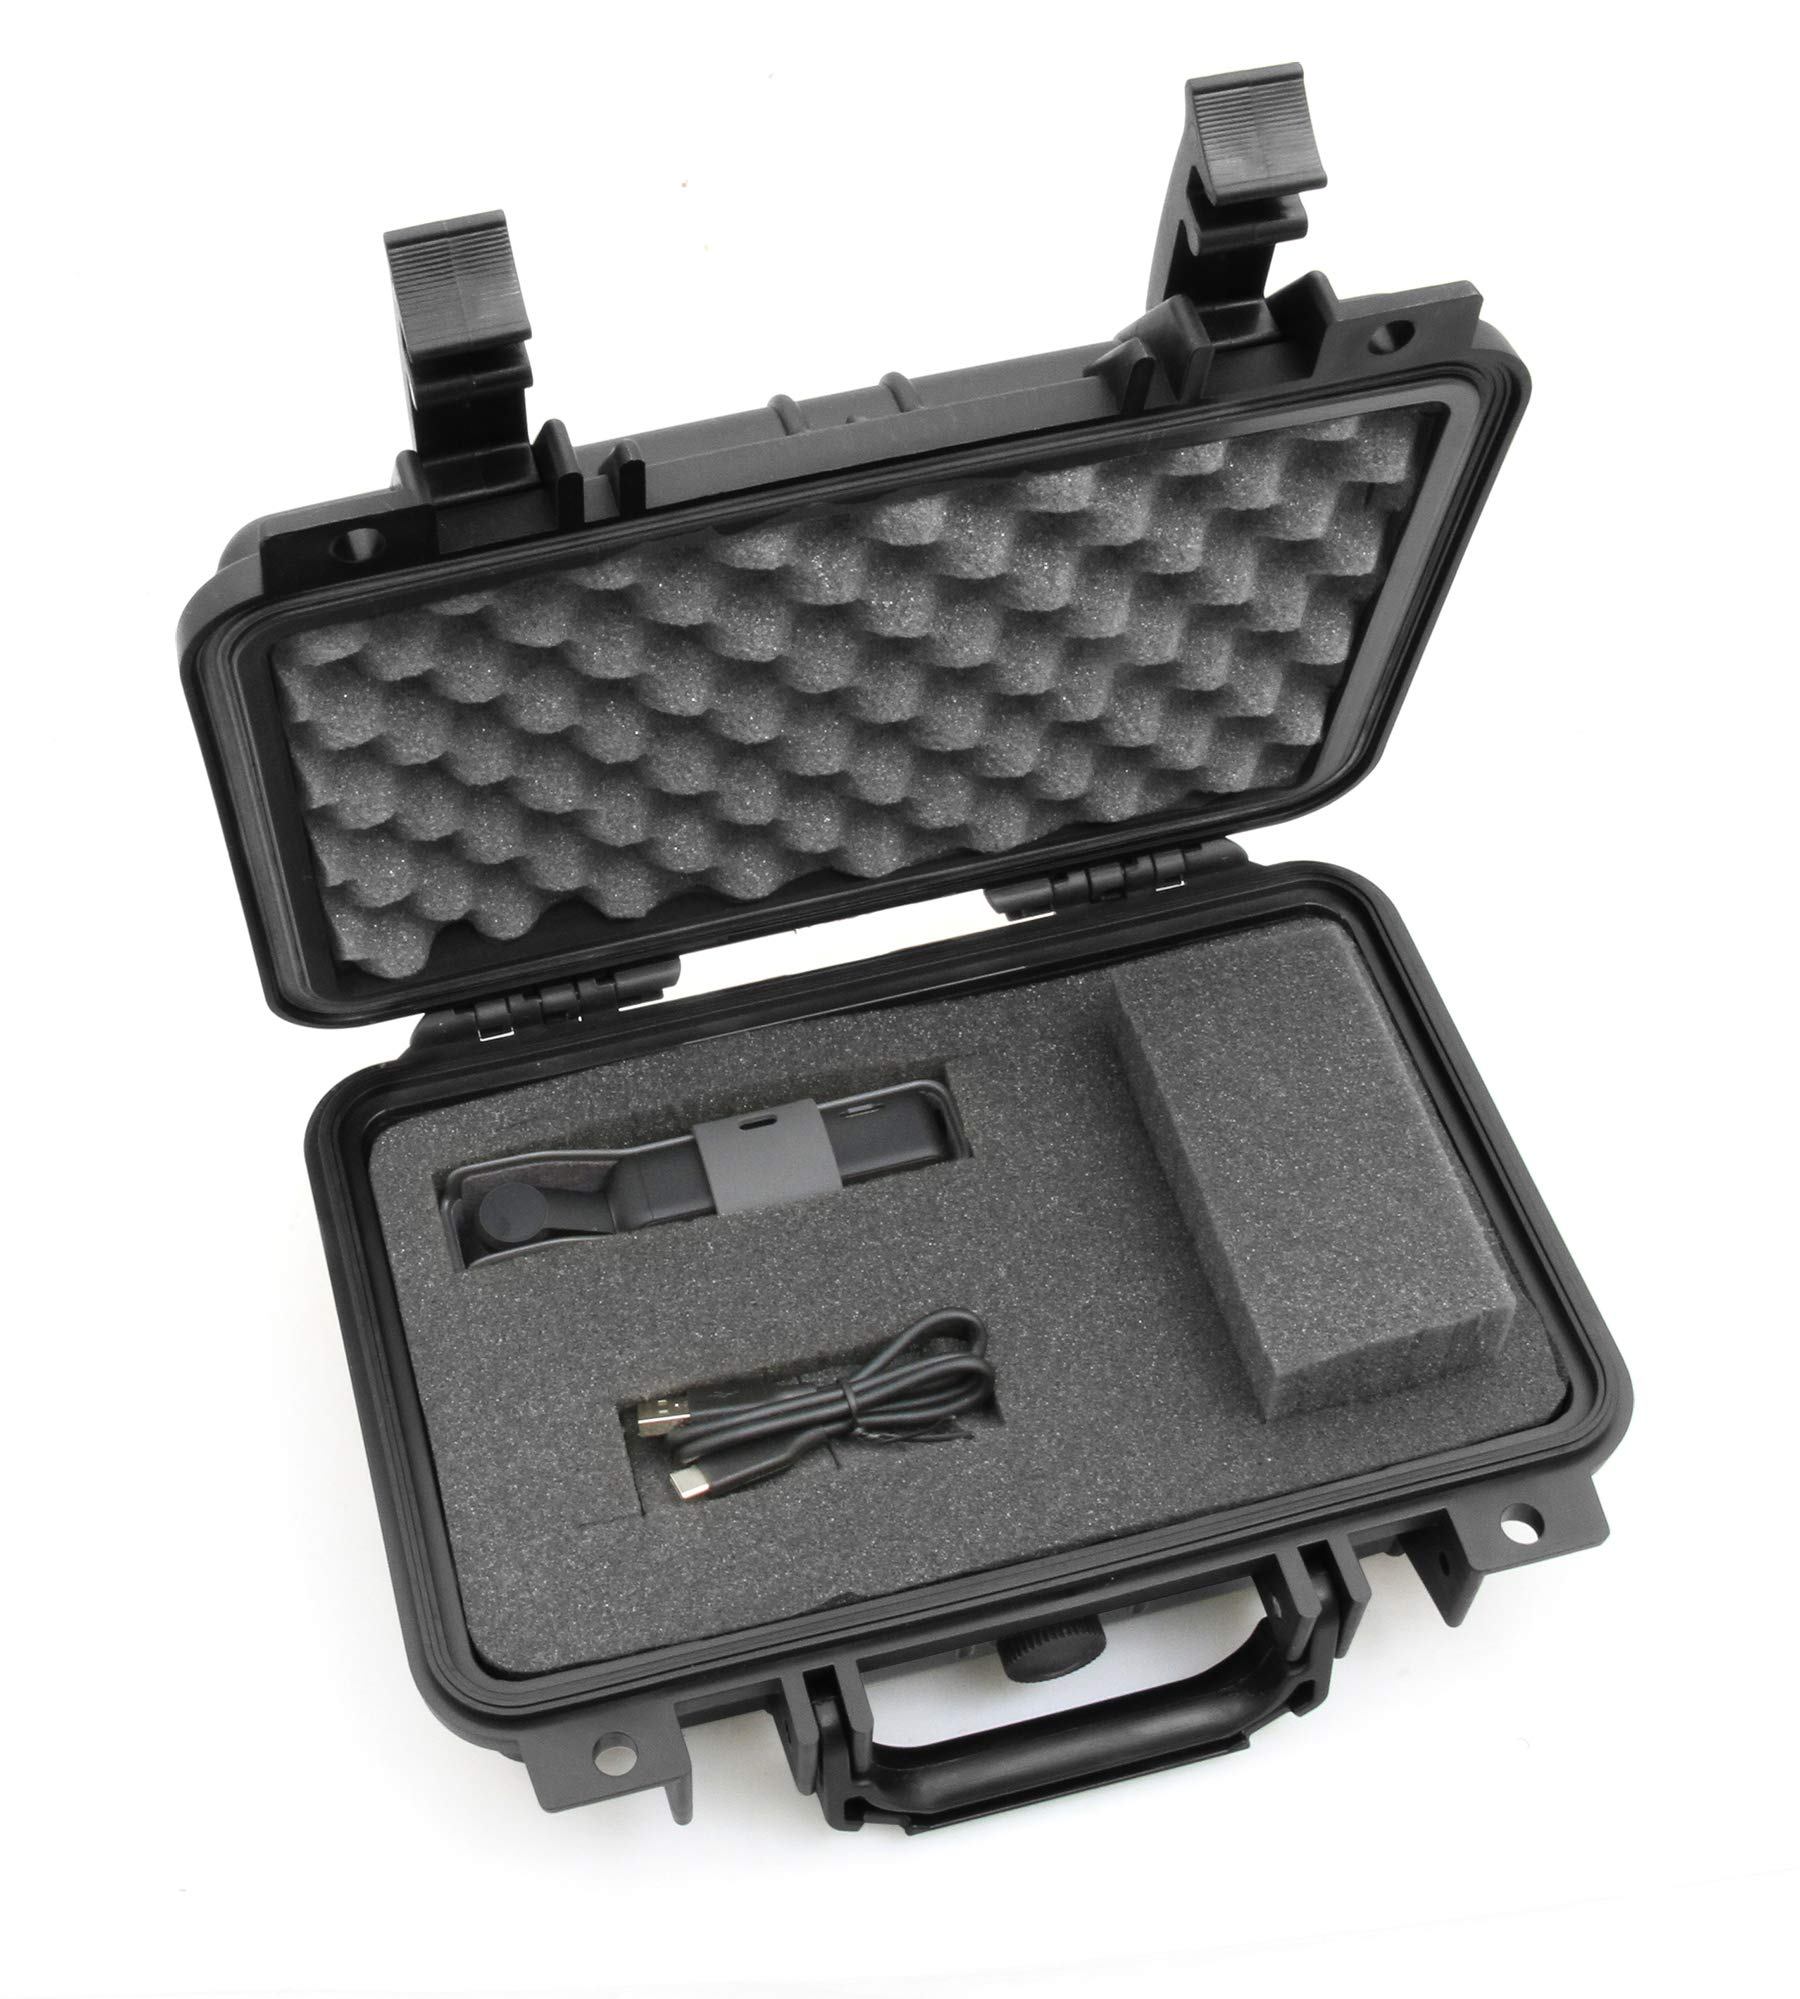 CASEMATIX Rugged Waterproof Case Compatible with DJI Osmo Pocket Gimbal and Accessories - Customizable Foam by CASEMATIX